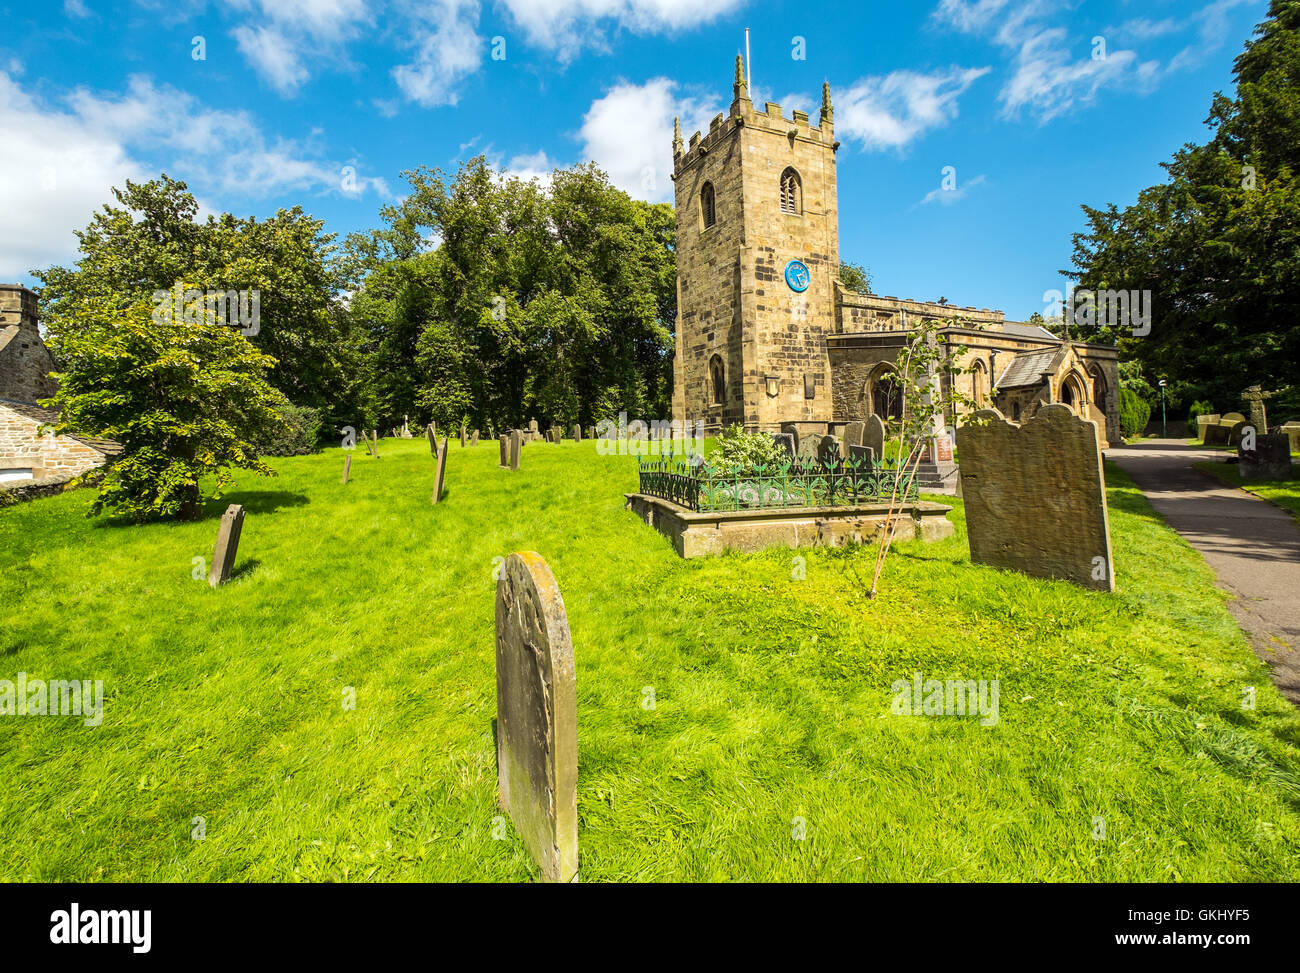 Eyam church, Eyam,Derbyshire - Stock Image